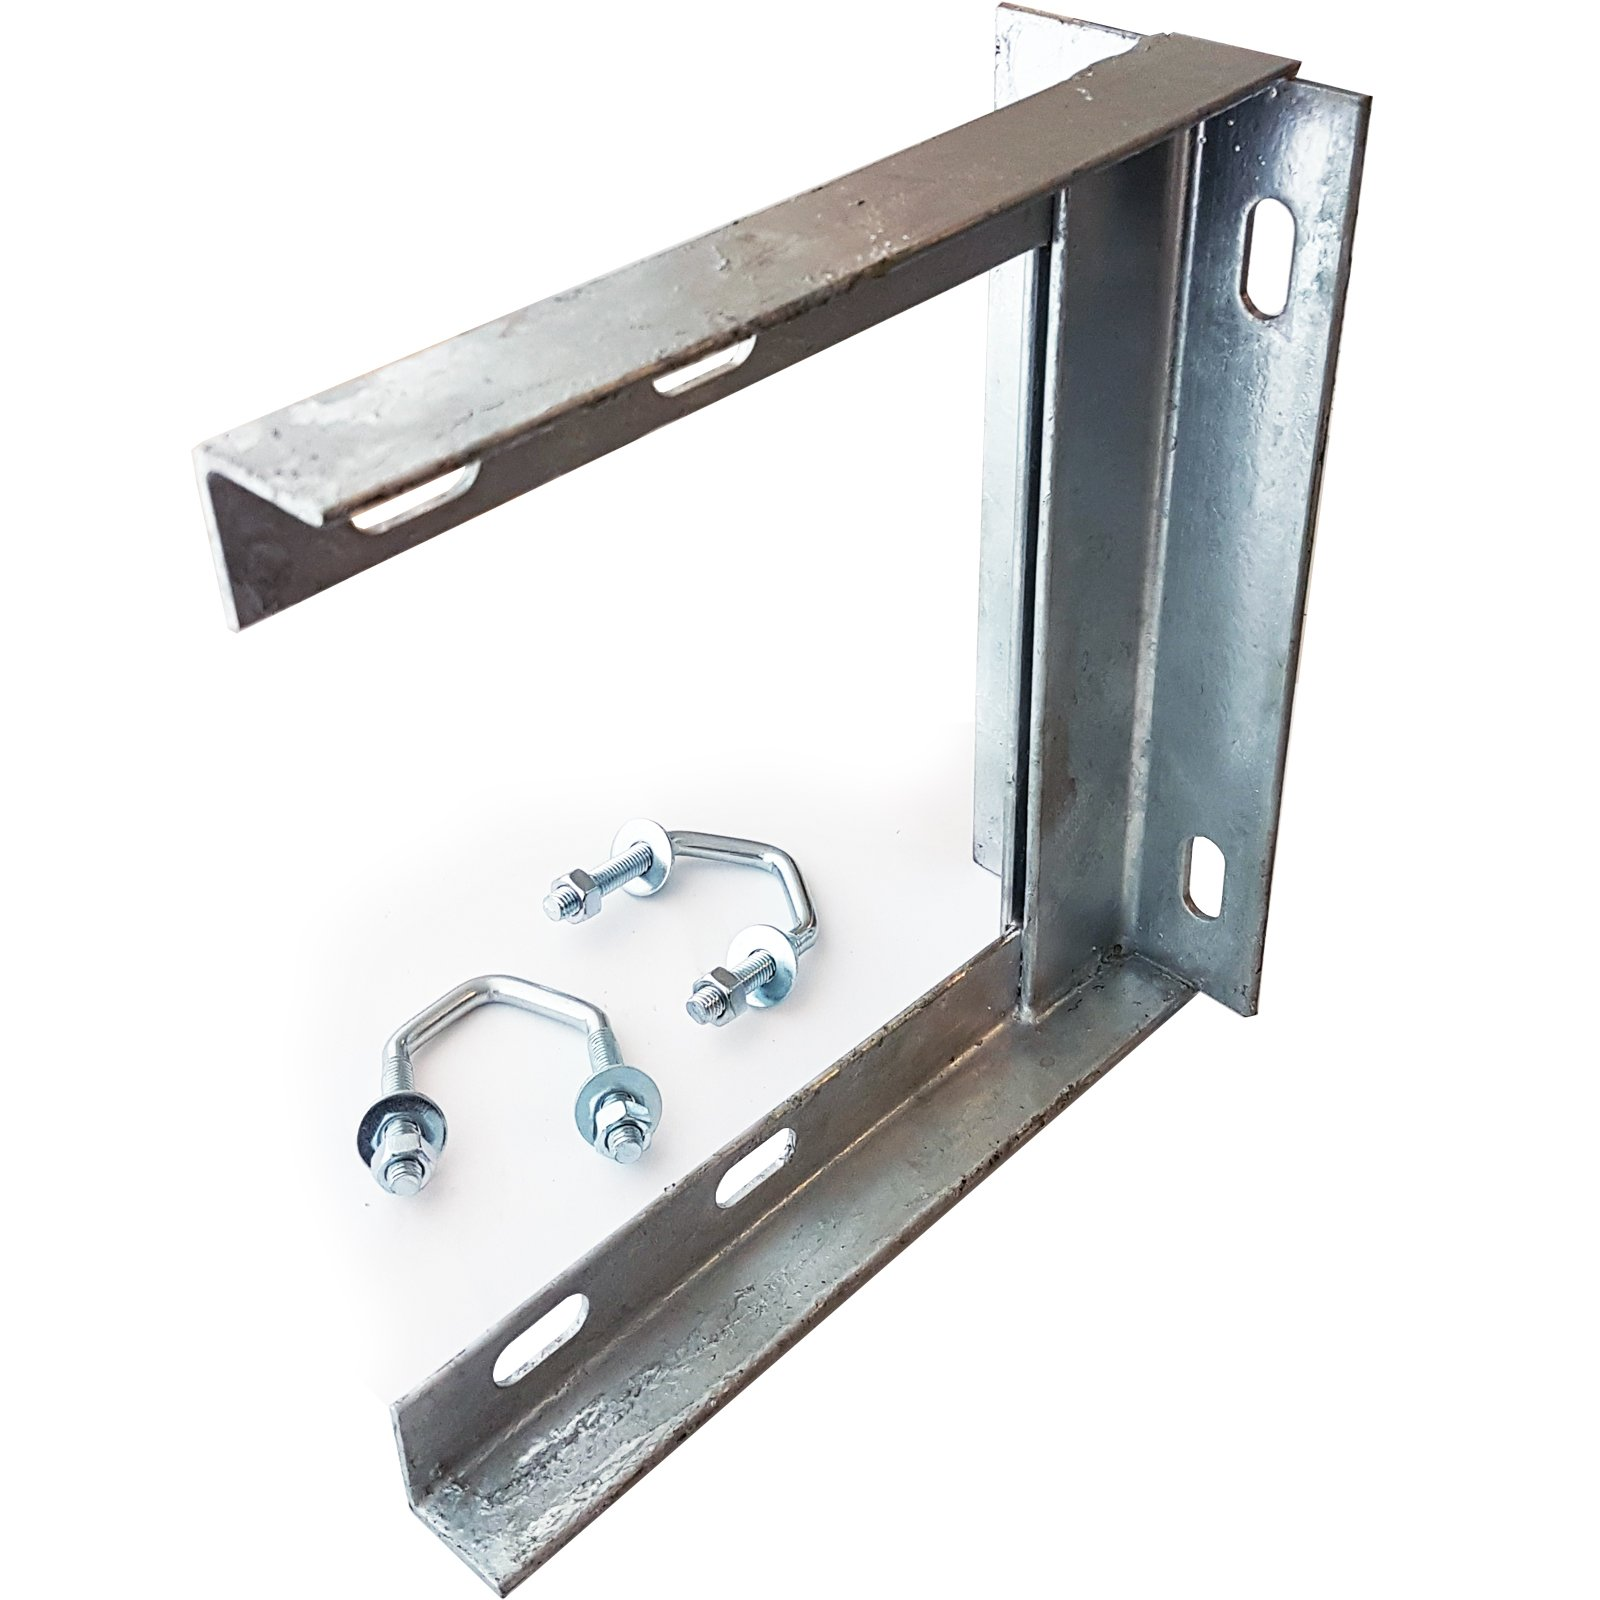 """Loops 9"""" x 9"""" Heavy Duty Steel TV Aerial Wall/Brick Mounting Bracket & V Bolts Galvanized - Pole/Mast/Clamp Install For Outdoor & Indoor Use"""